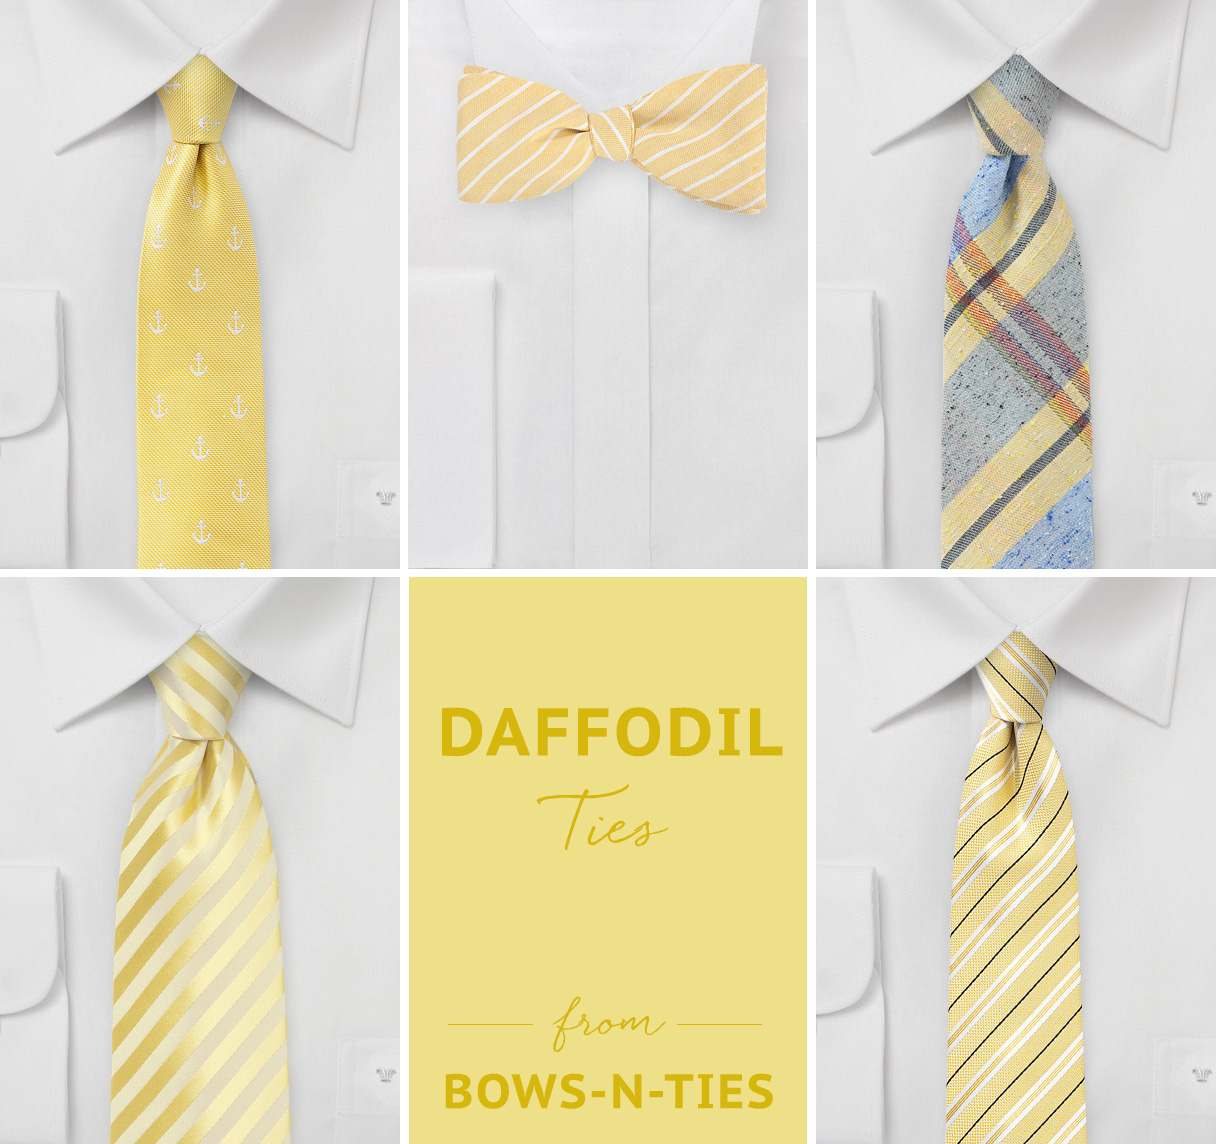 Daffodil Yellow Ties from Bows-N-Ties